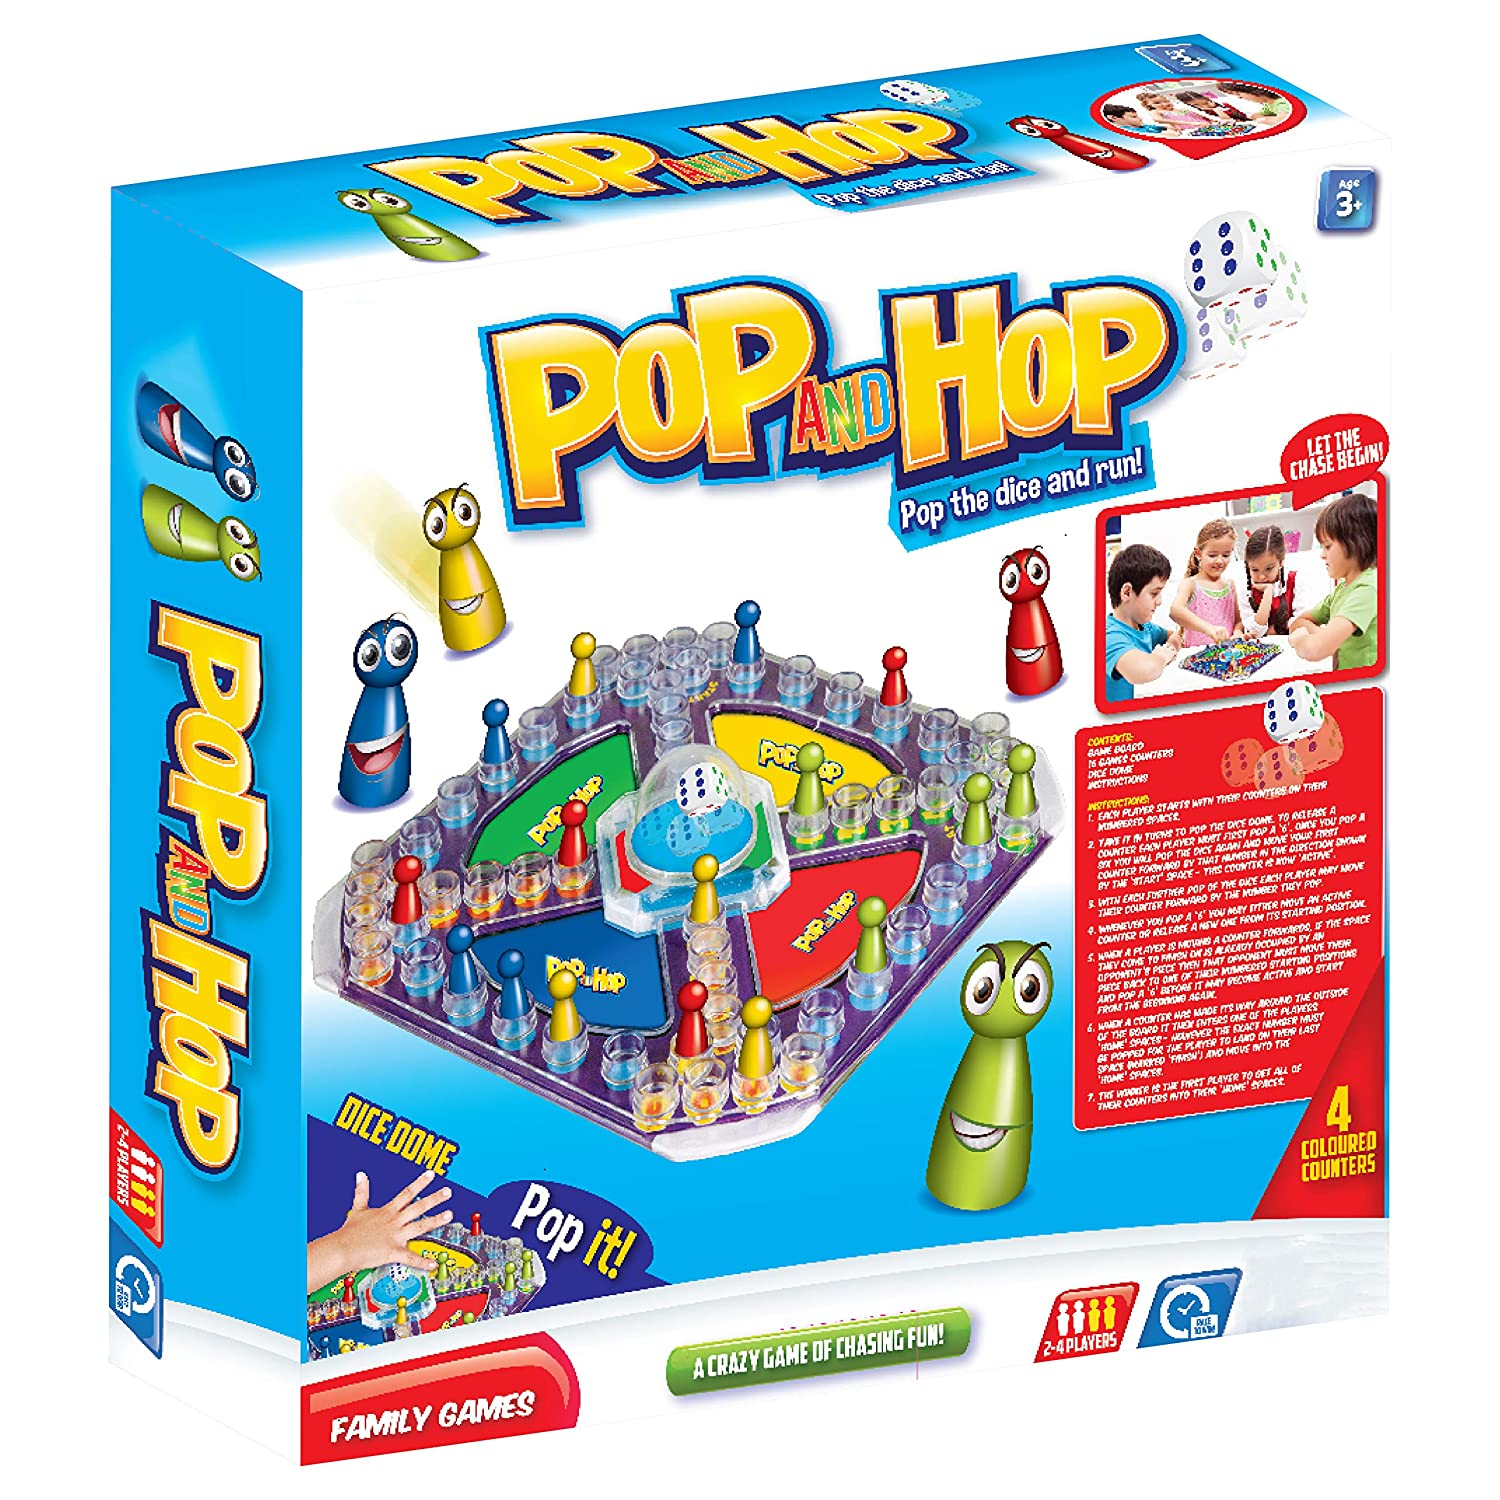 Pop and Hop Board Game by Laeto Toys & Games Frustration